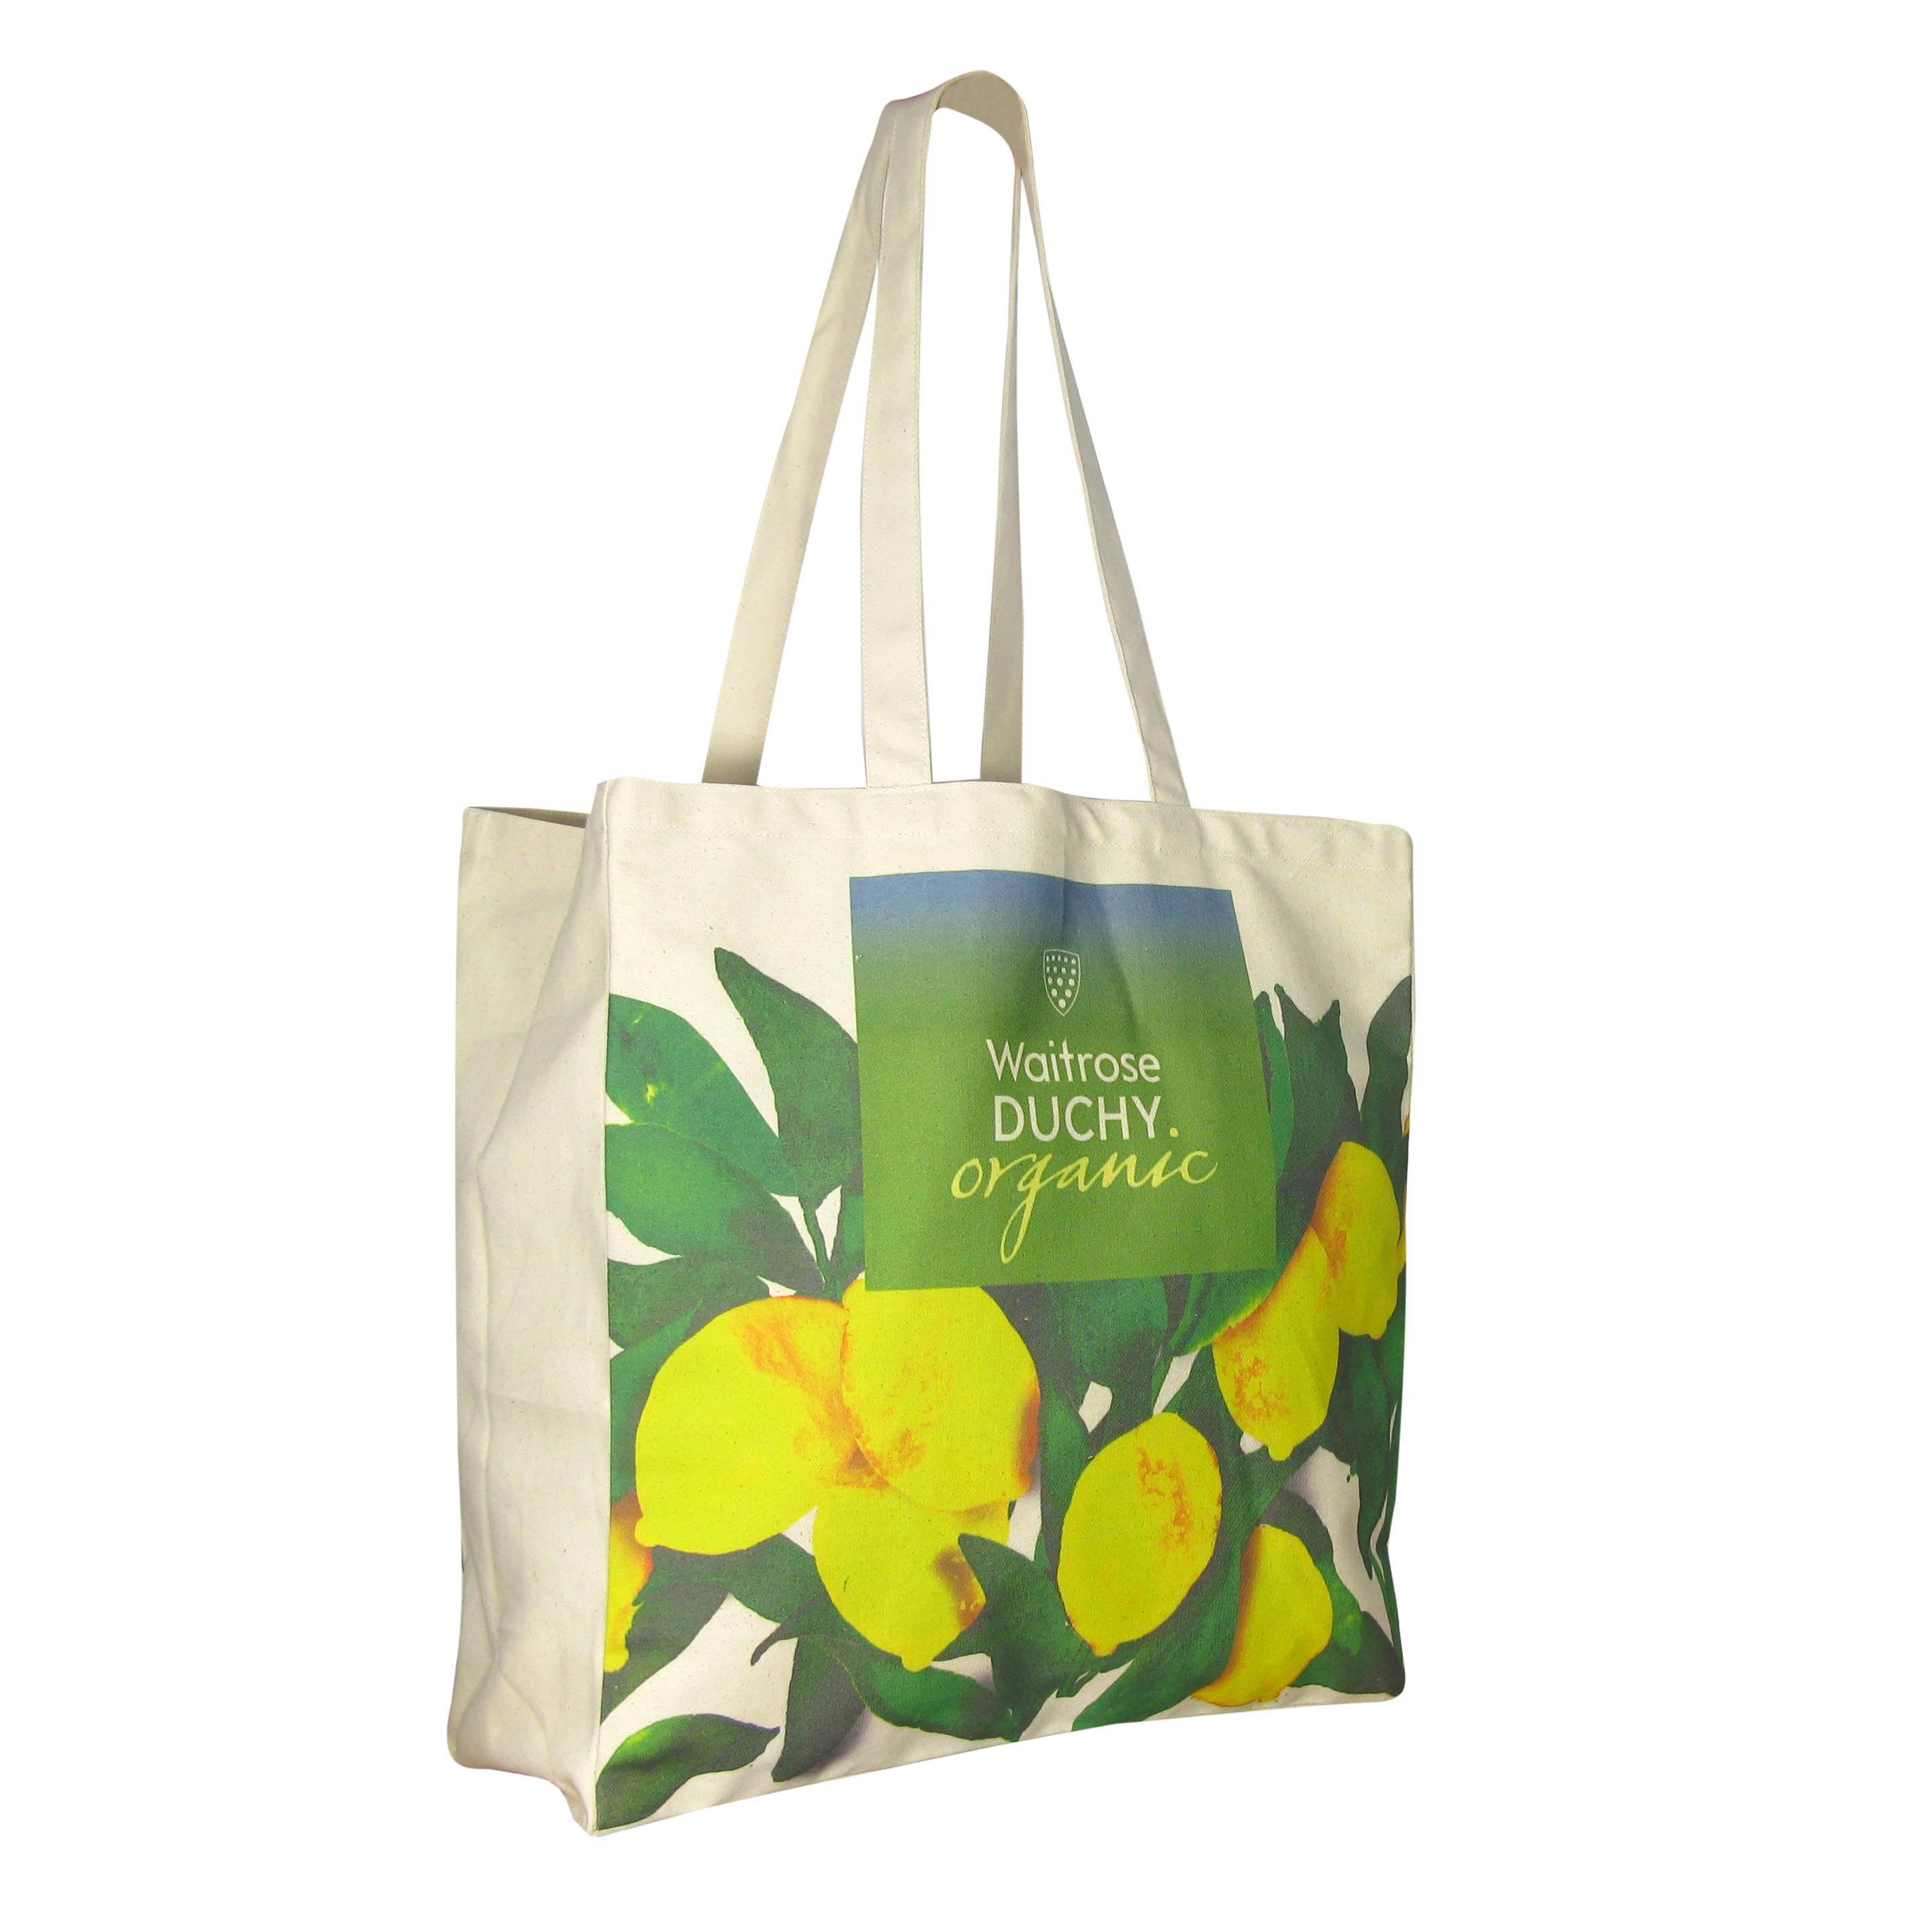 Waitrose Duchy Organic Cotton Shopper